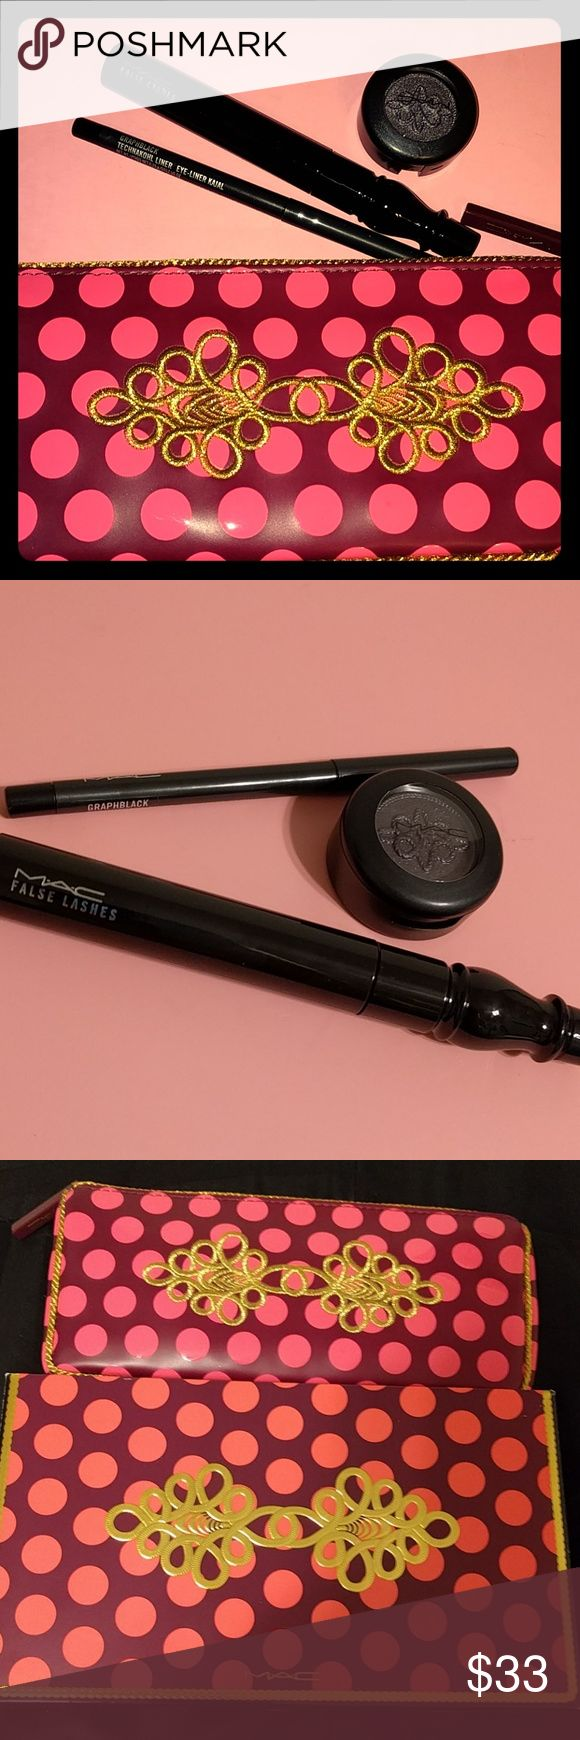 NIB MAC Nutcracker Suite Smokey Eye Bag Brand new, authentic set from Mac. From this past holiday season so products are fresh. Currently selling on eBay for $60.  NOTE - this is discounted so highly because the paint pot is missing, but it includes: False Lashes Mascara Technakohl Liner in Graphblack Eyeshadow in Fathoms Deep Limited Edition Nutcracker Makeup Bag  None of the products have been opened, value of products before bag is $56! Amazing deal  Bundle with my other listings for…